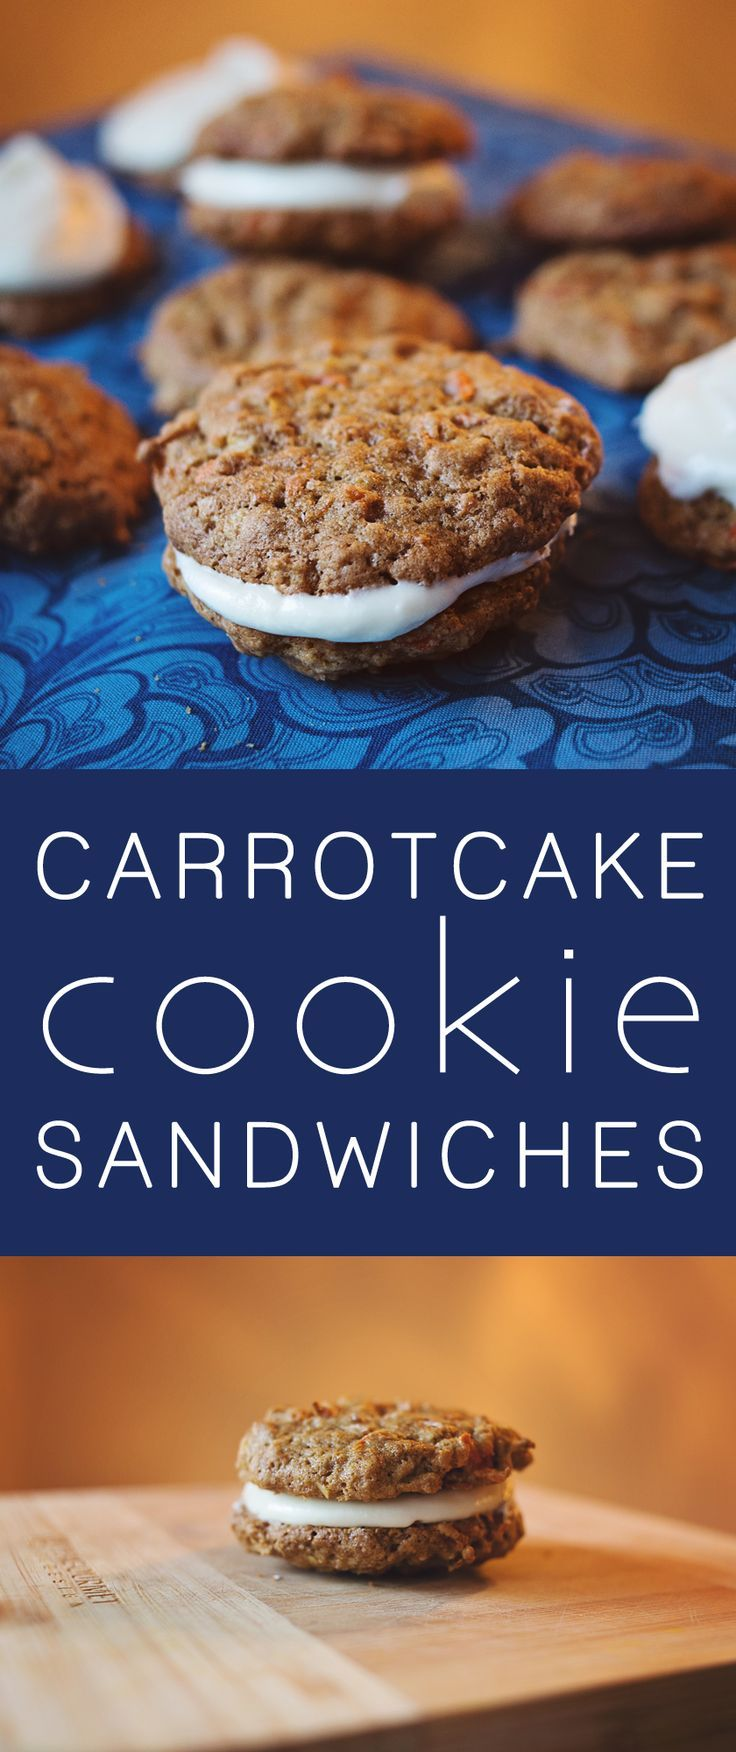 Fun recipe for chewy carrot cake cookies made into dessert sandwiches with cream cheese frosting.